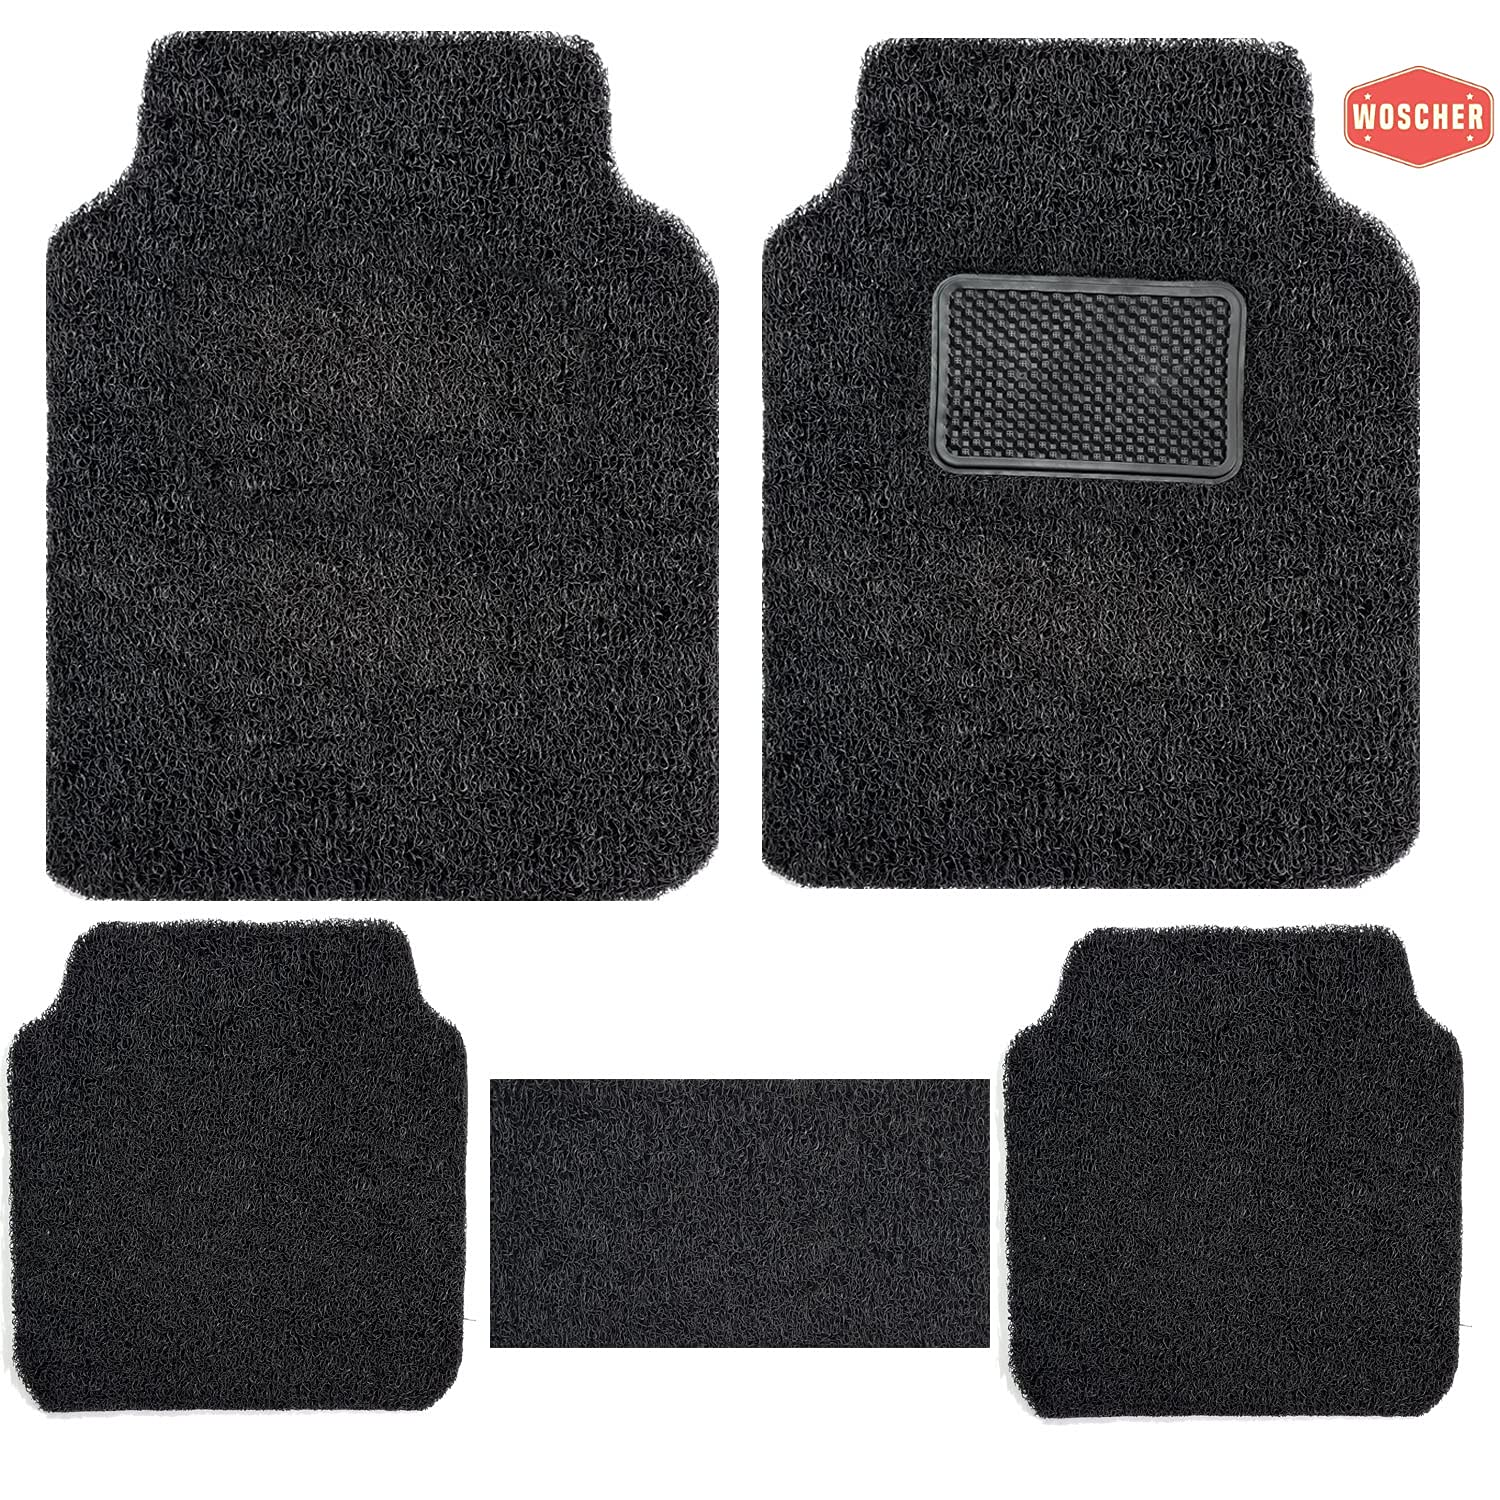 woscher-6280-anti-slip-curly-grass-car-mat-universal-for-all-cars-set-of-5-black